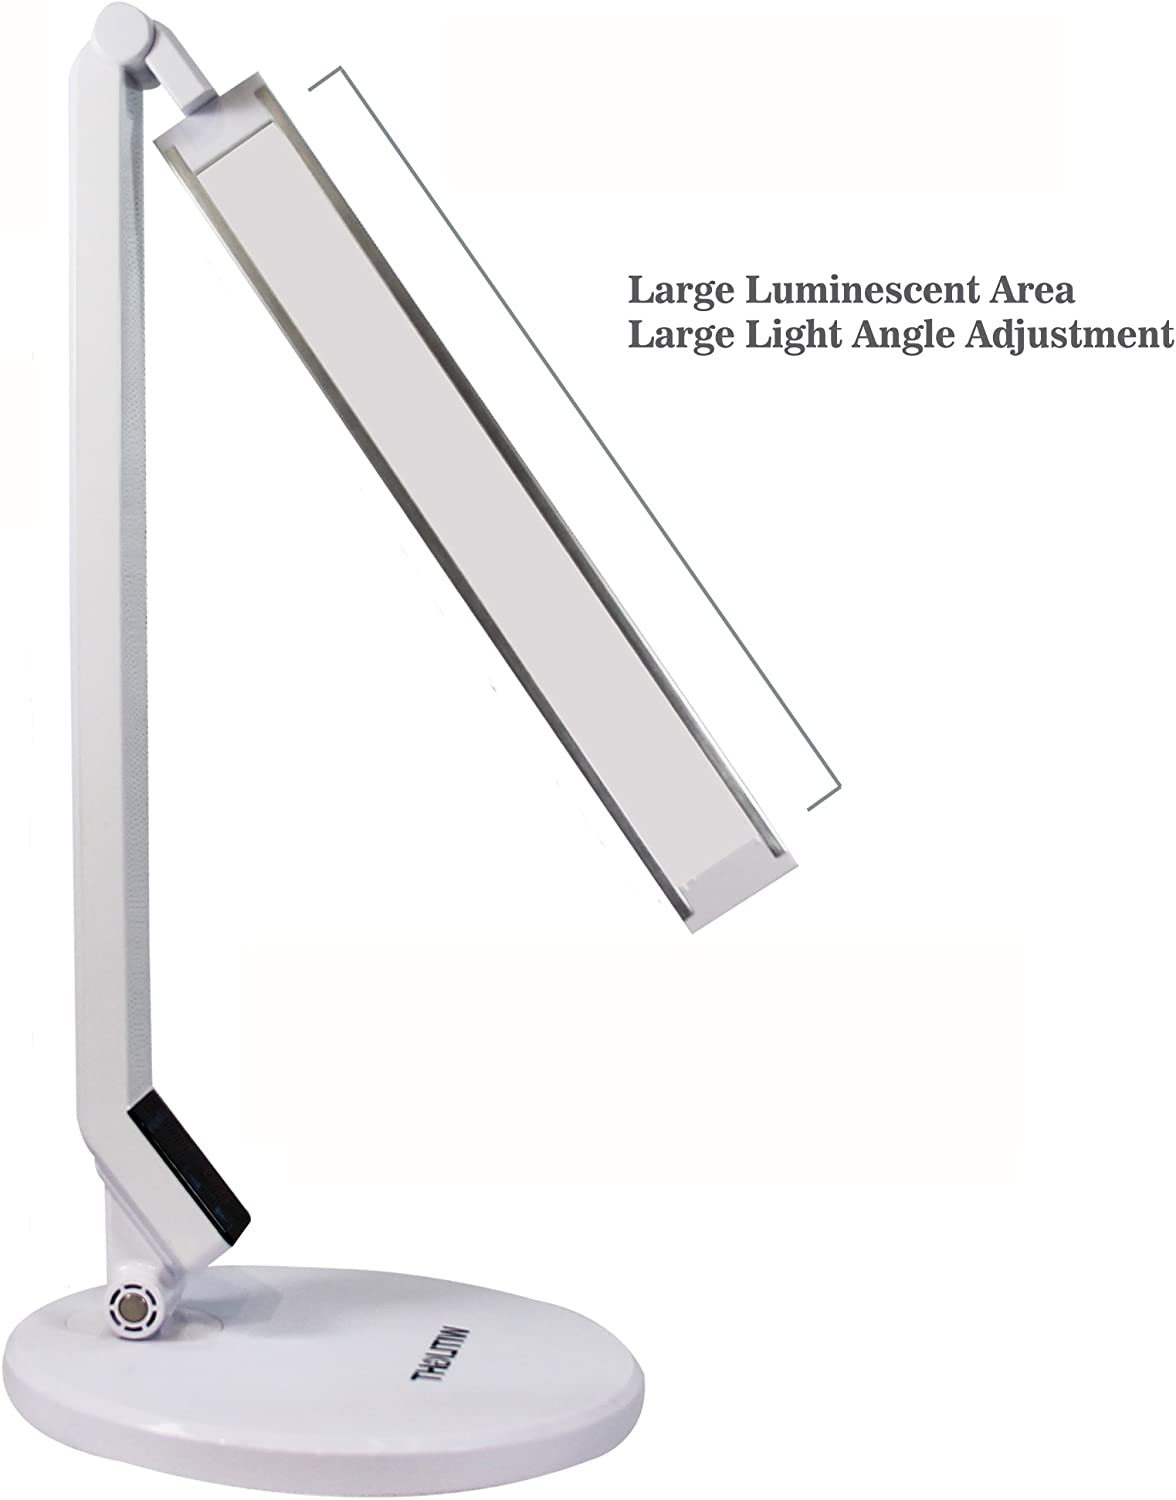 WITLIGHT LED Dimmable Desk Lamp, 5 Dimming Levels with Touch Sensitive, Eye-Caring Tech, 5500-6500K, Daylight White Table Light, Folding Rotating, Memory Function, White with Silver Head